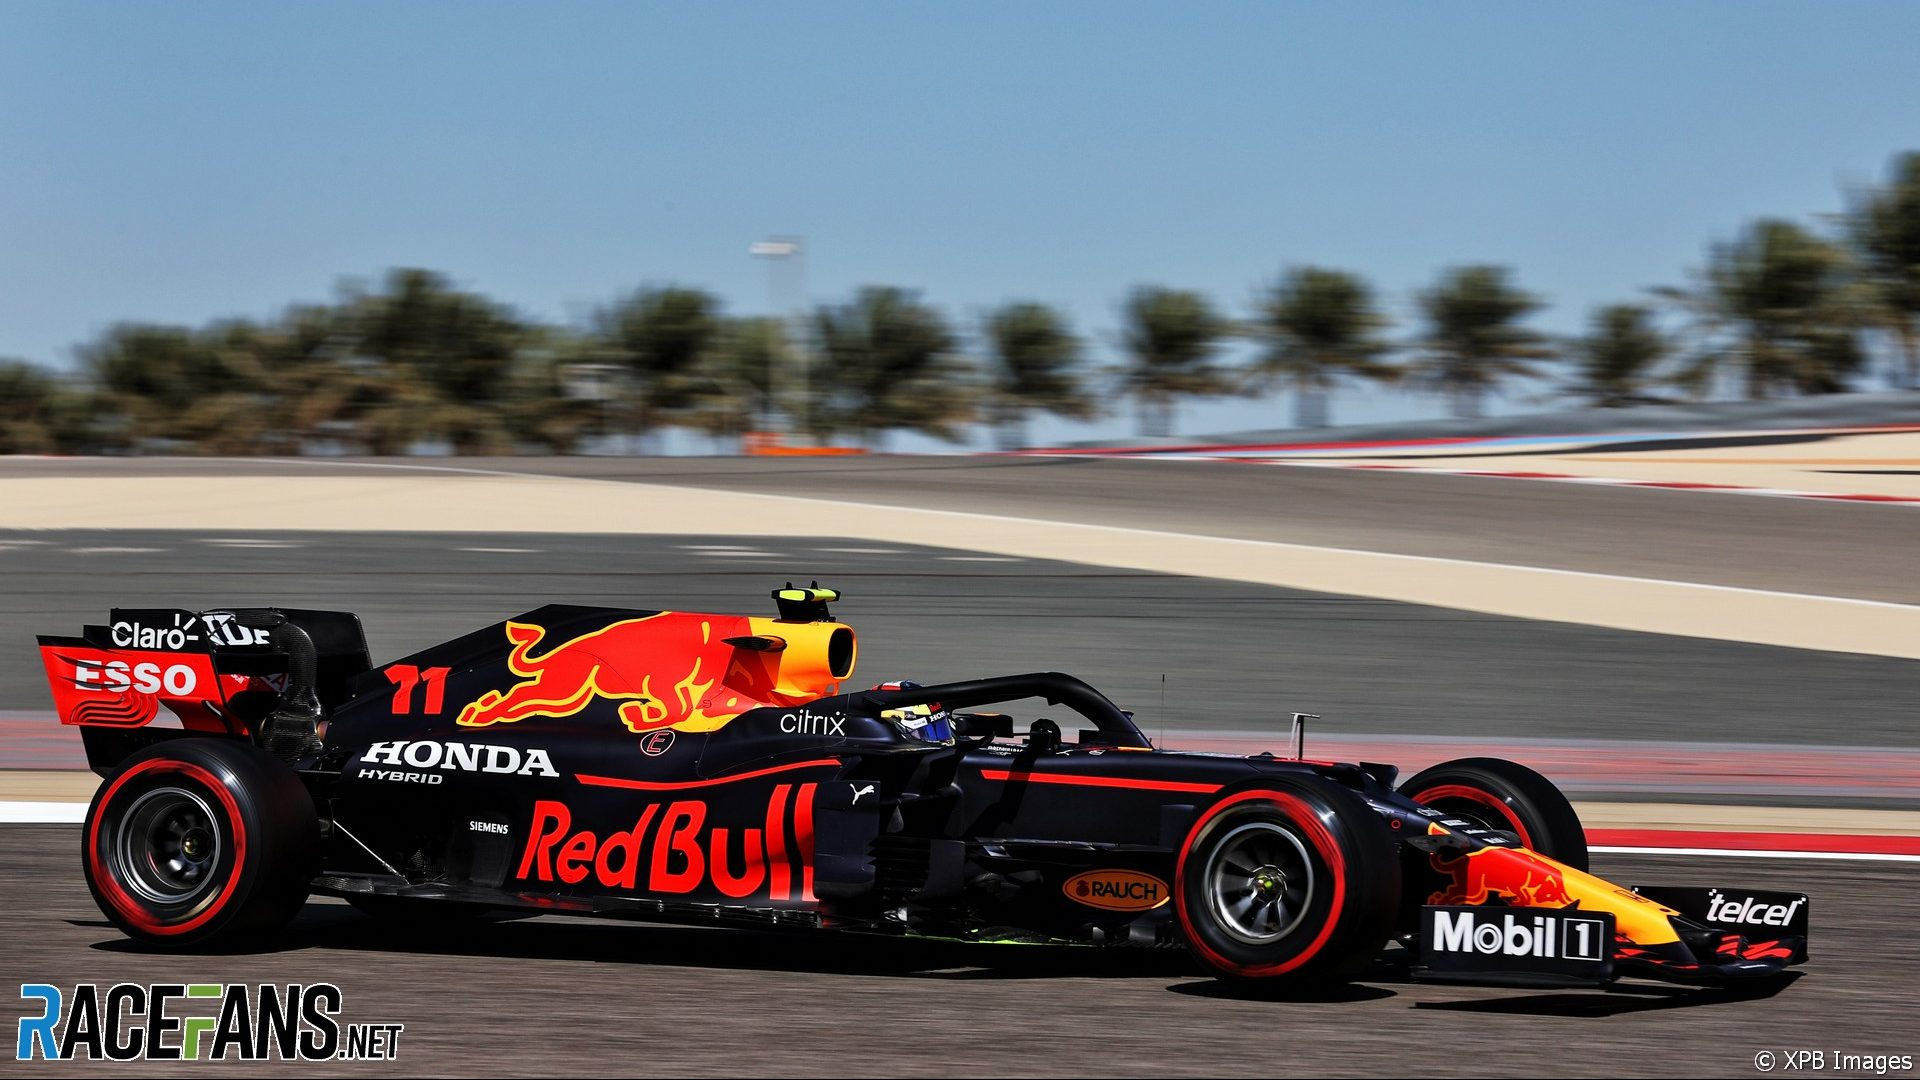 Sergio Perez, Red Bull, Bahrain International Circuit, 2021